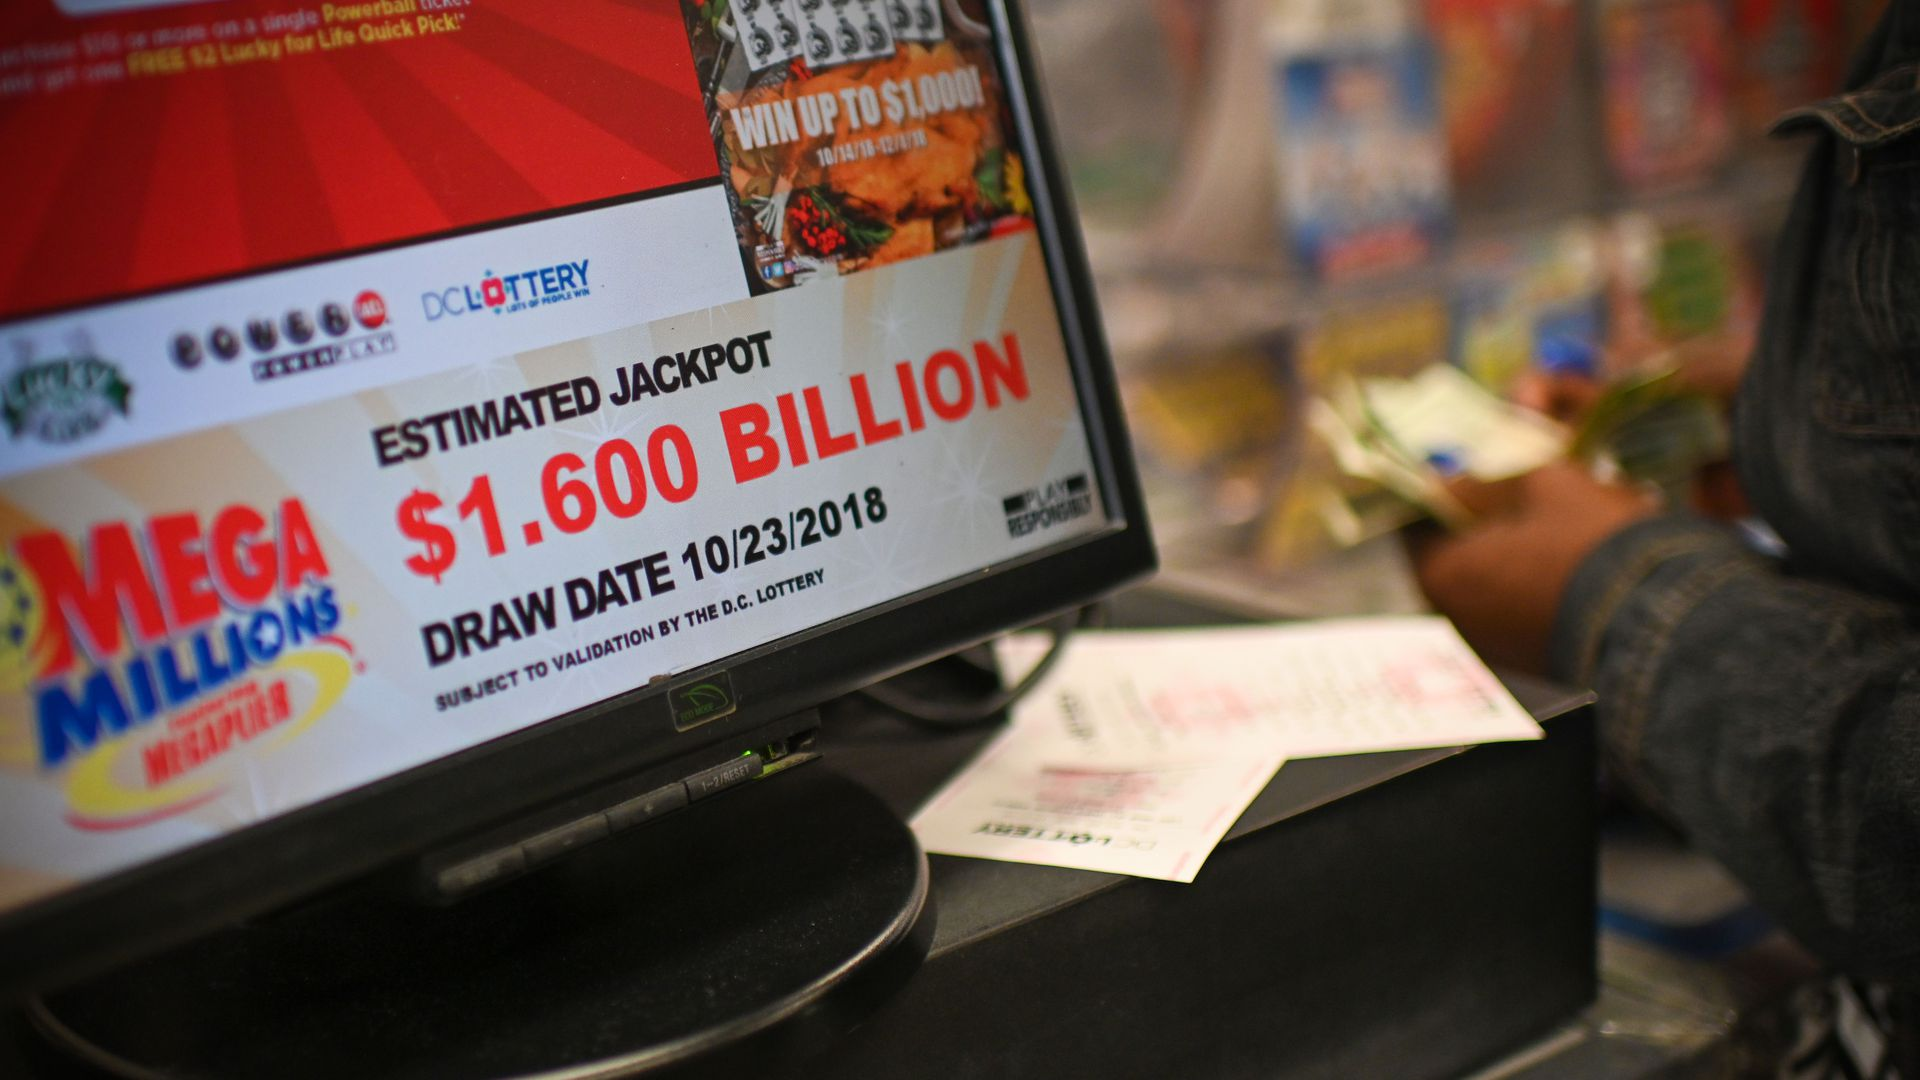 A computer screen showing the $1.6 billion jackpot.